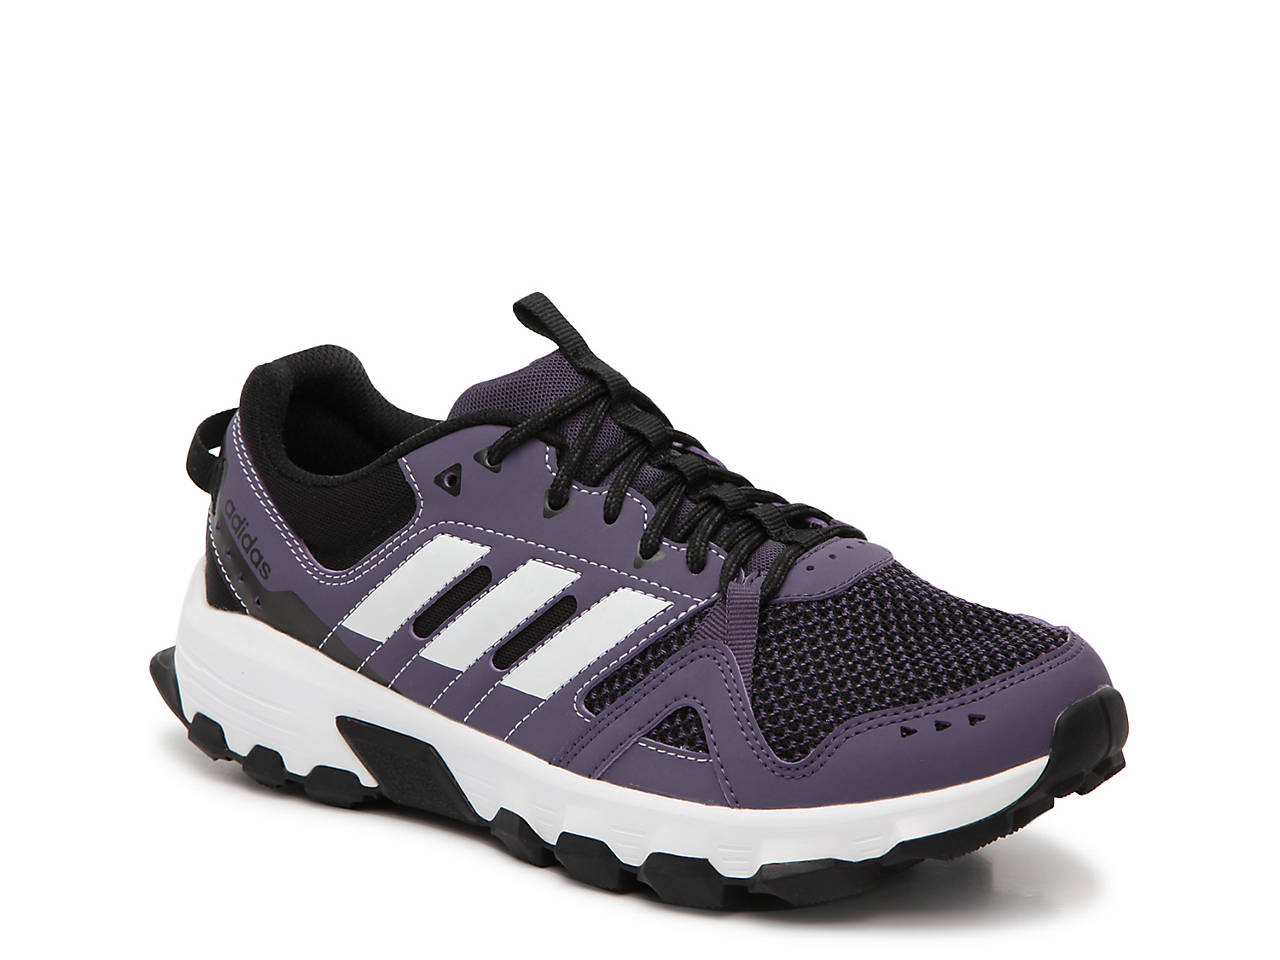 30b5a6243f2e8f adidas Rockadia Trail Running Shoe - Women s Women s Shoes